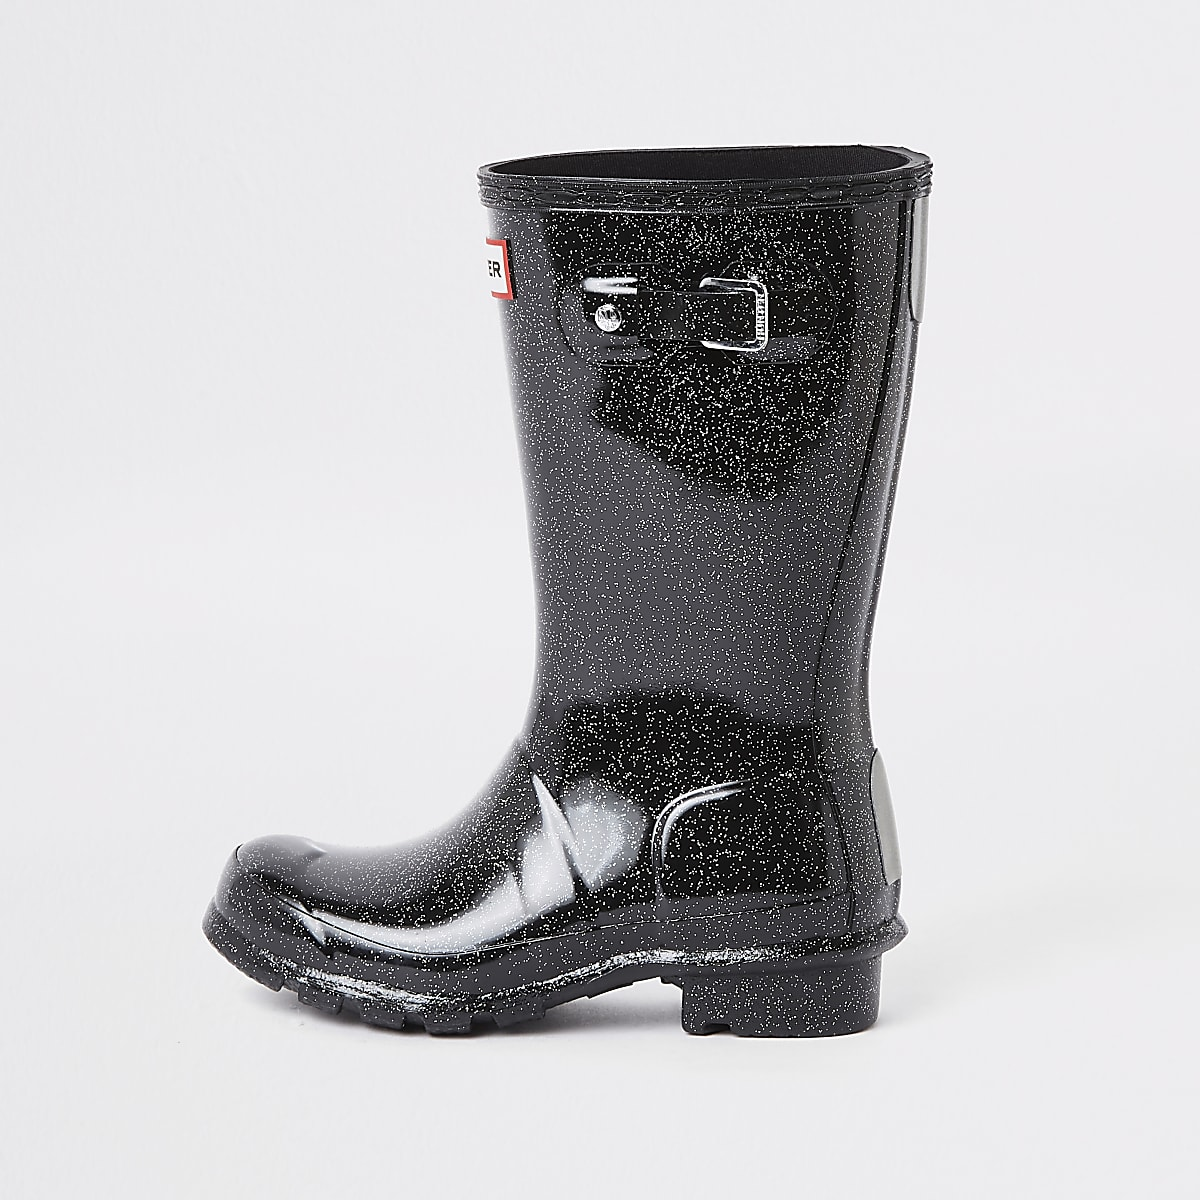 sports shoes c642a e146f Kids Hunter Original black glitter wellies